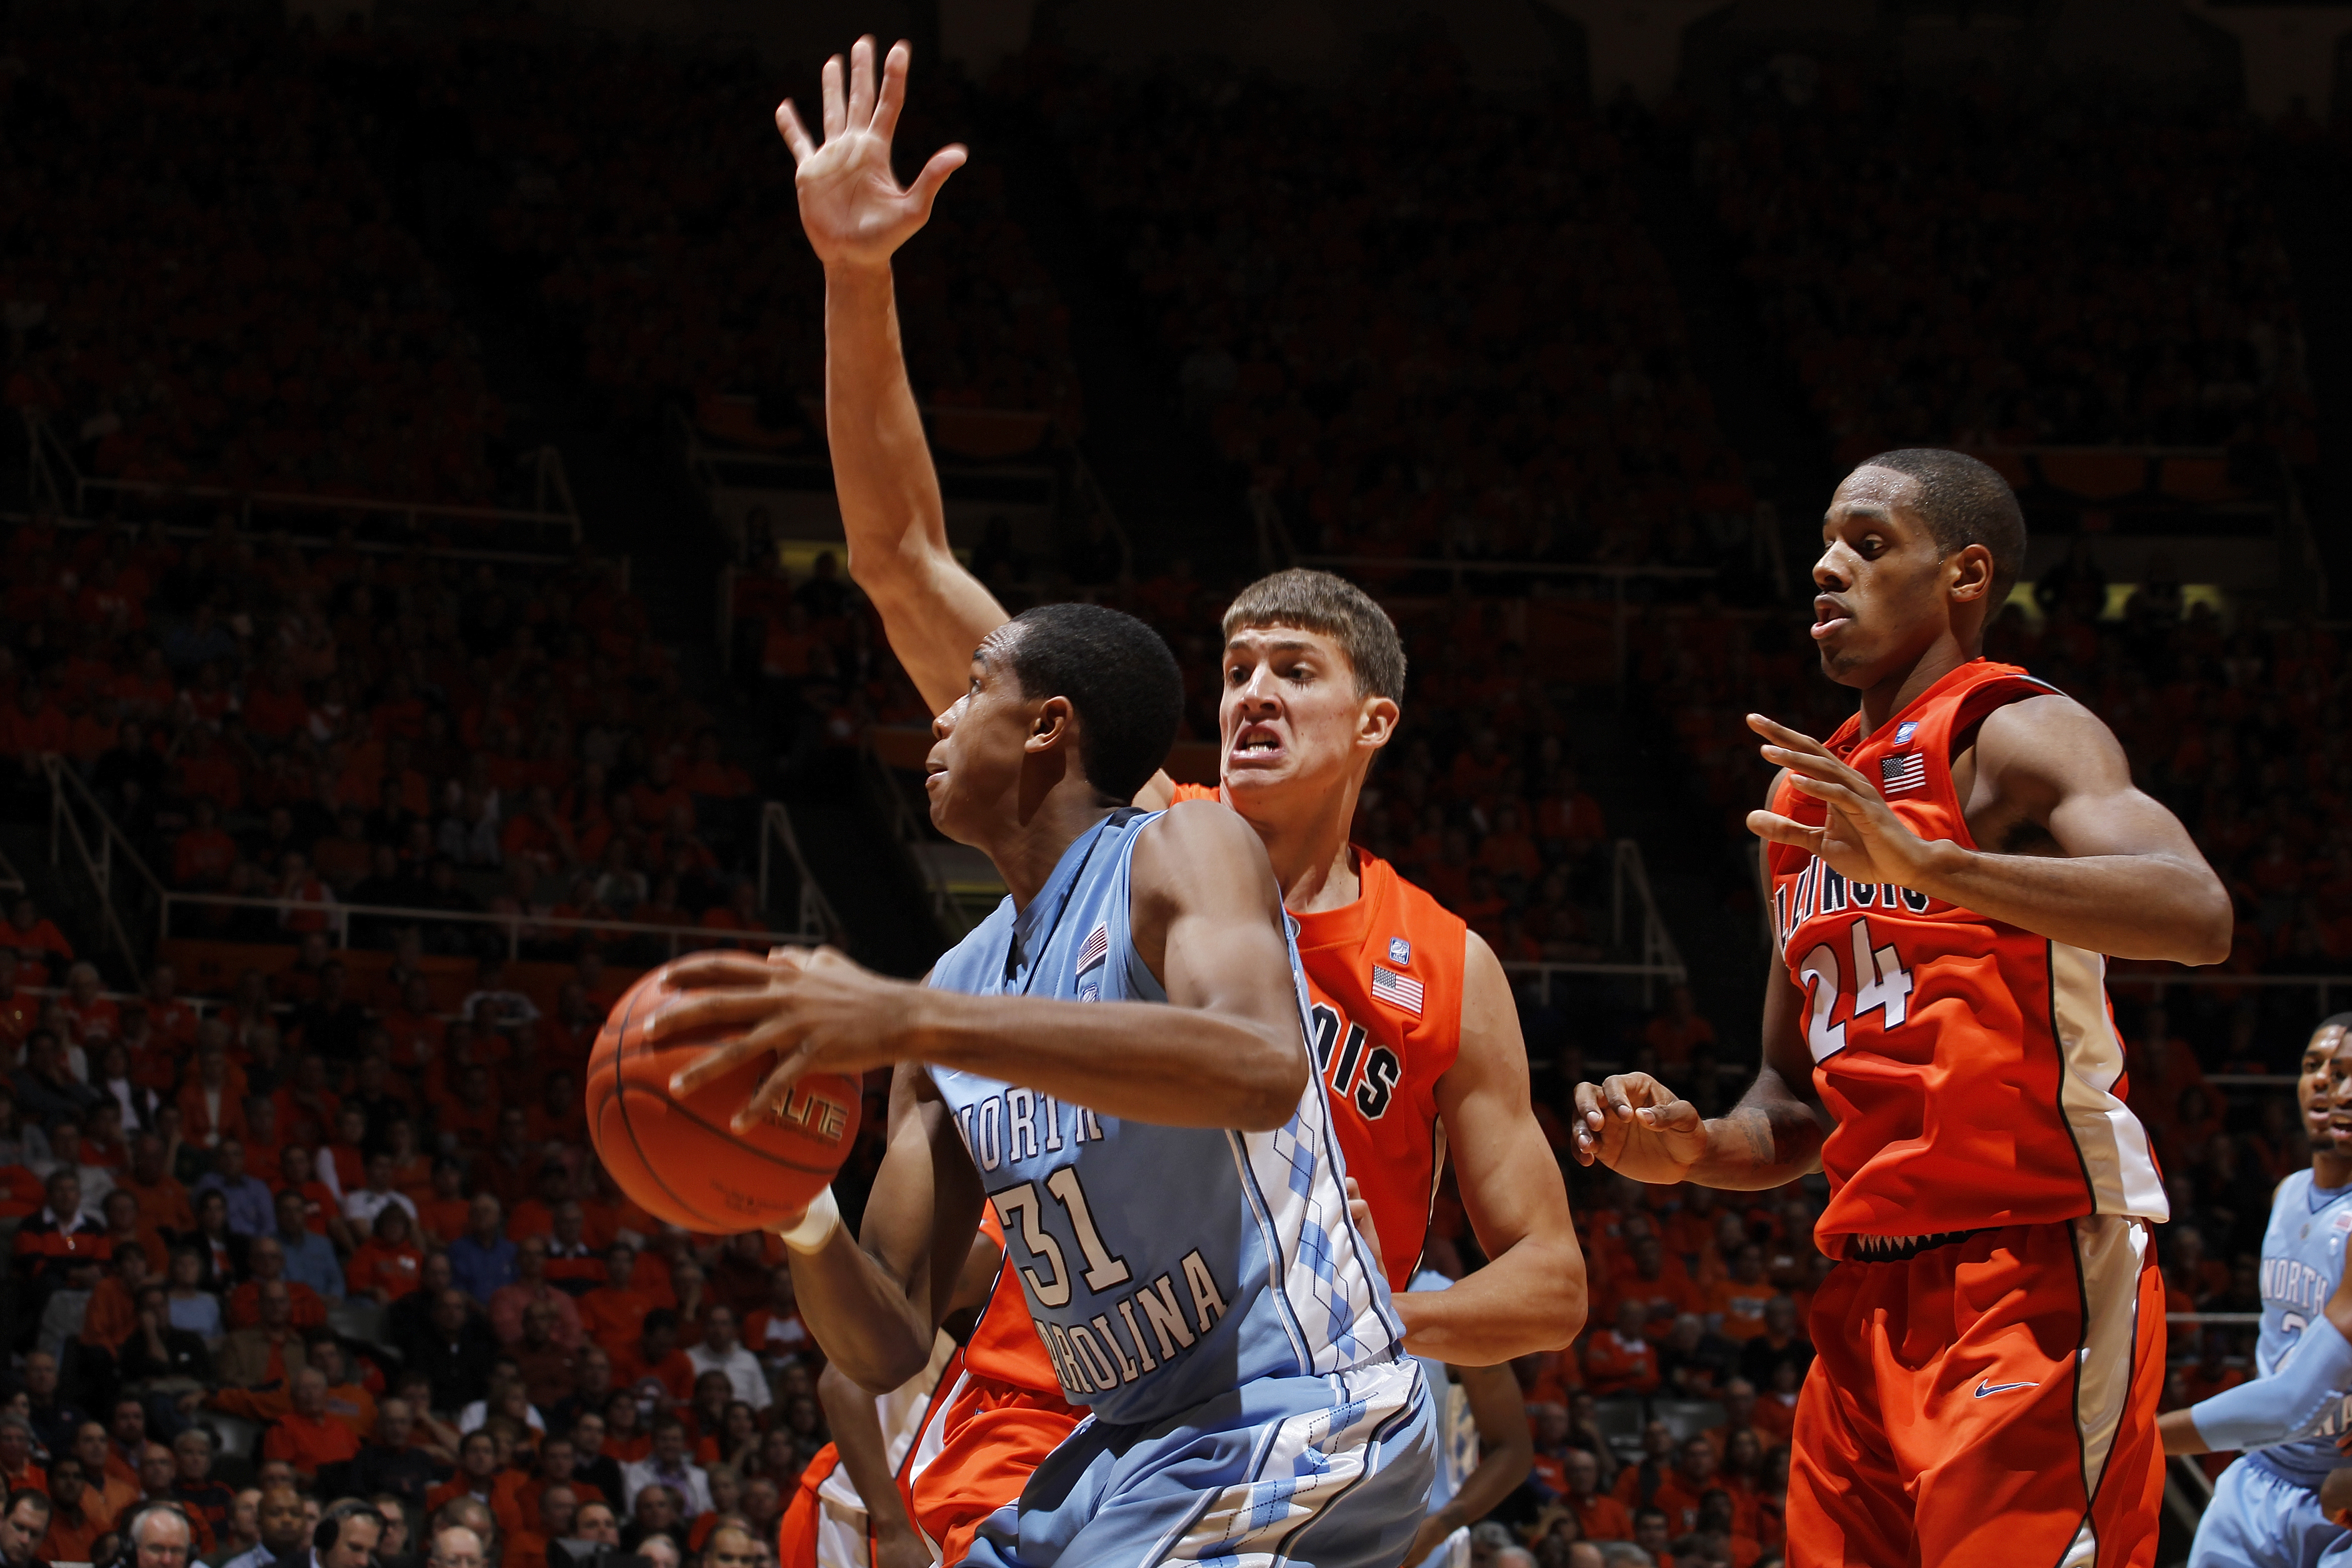 CHAMPAIGN, IL - NOVEMBER 30: Meyers Leonard #12 and Mike Davis #24 of the Illinois Fighting Illini defend against John Henson #31 of the North Carolina Tar Heels during the 2010 ACC/Big Ten Challenge at Assembly Hall on November 30, 2010 in Champaign, Ill